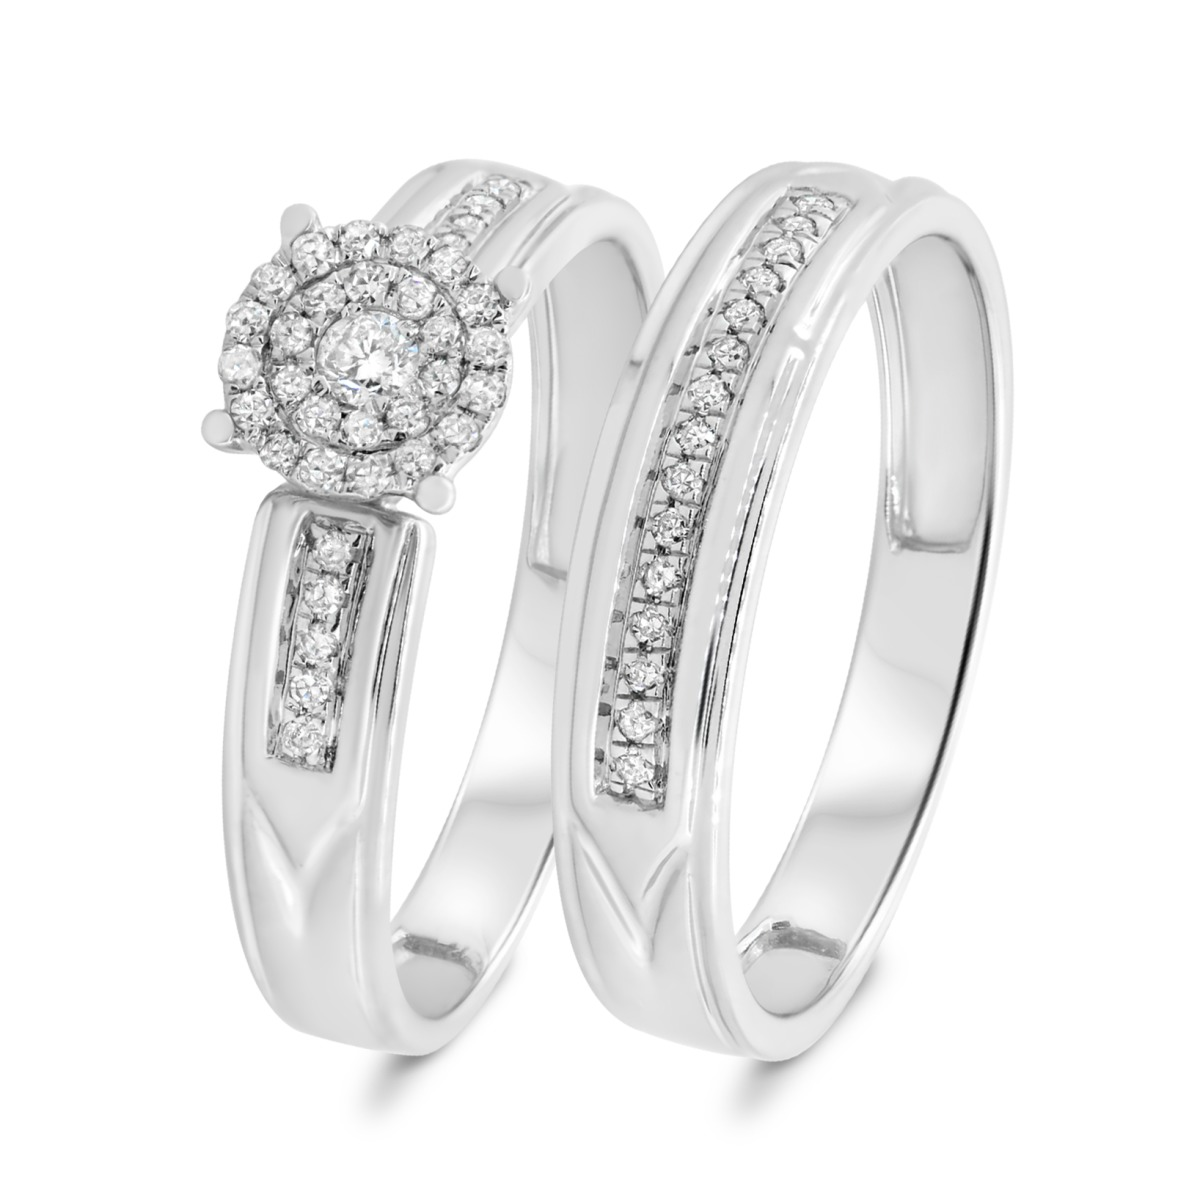 1/4 Carat T.W. Diamond Matching Bridal Ring Set 14K White Gold